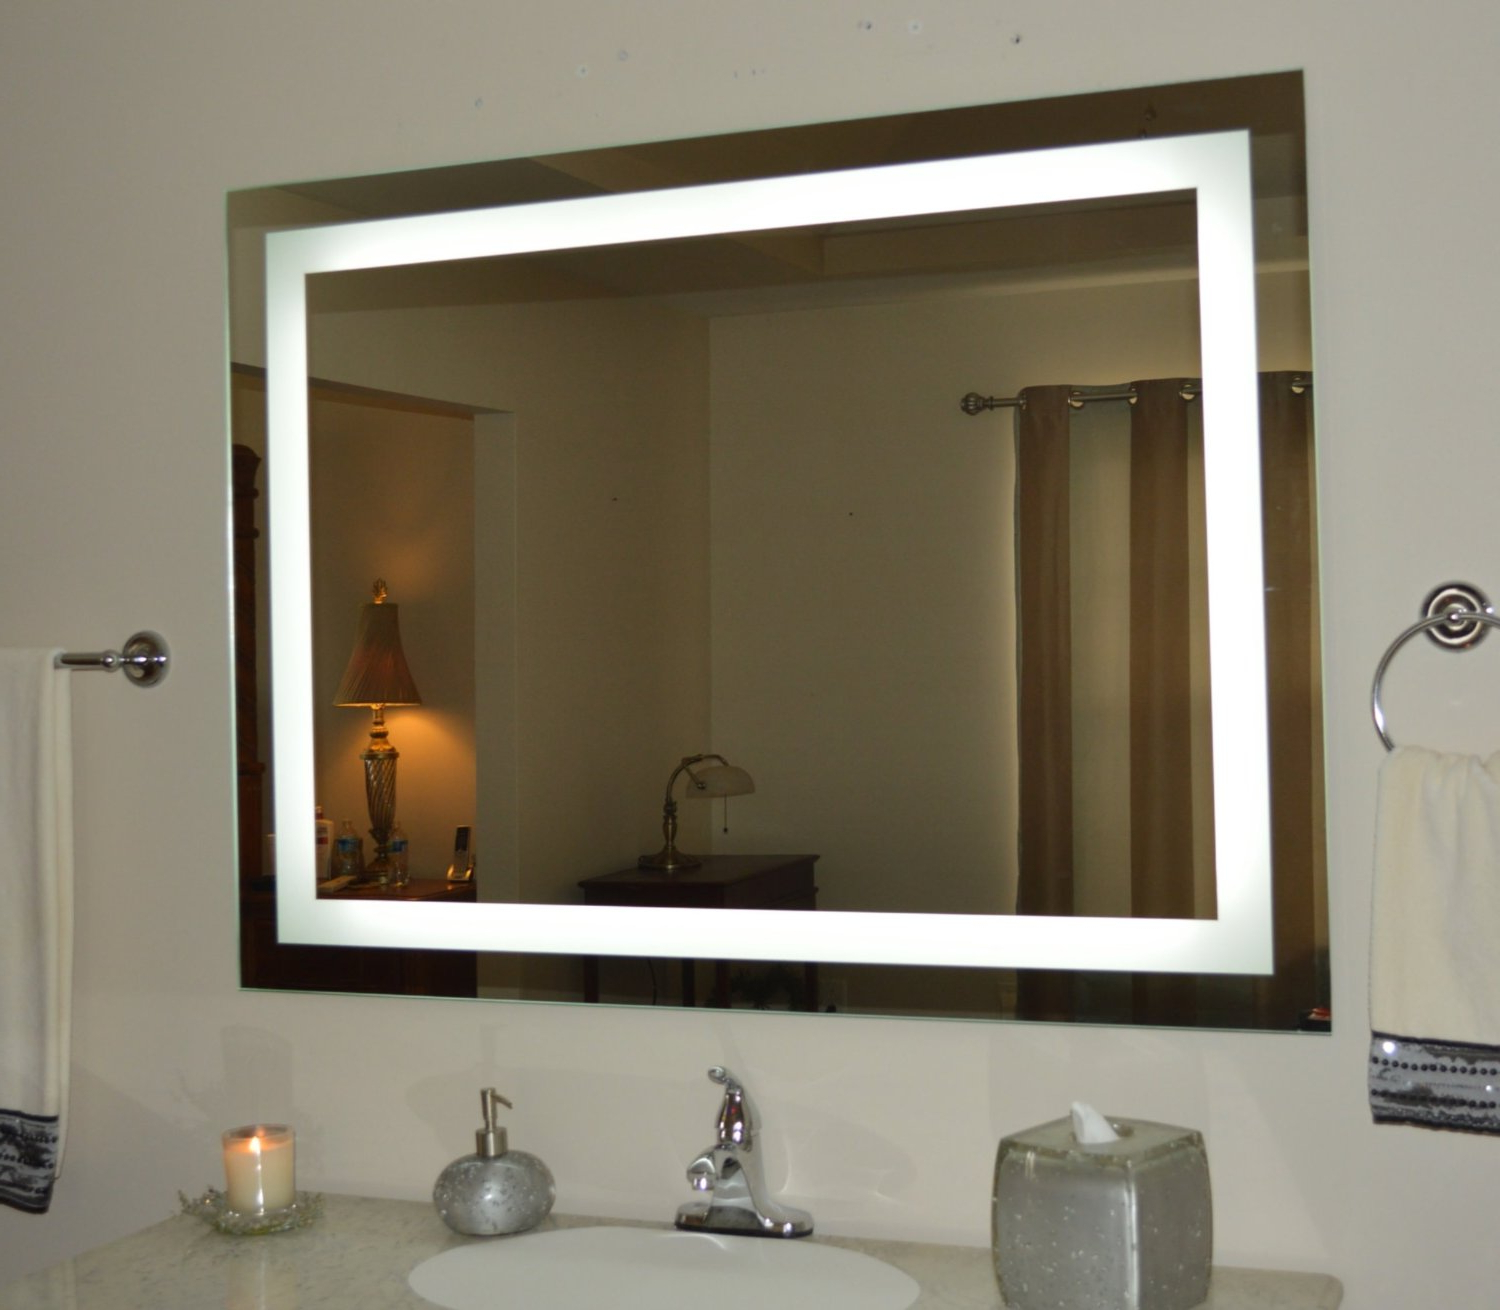 Buy Lighted Bathroom Vanity Mirrors Online For Popular Illuminated Wall Mirrors For Bathroom (View 3 of 20)